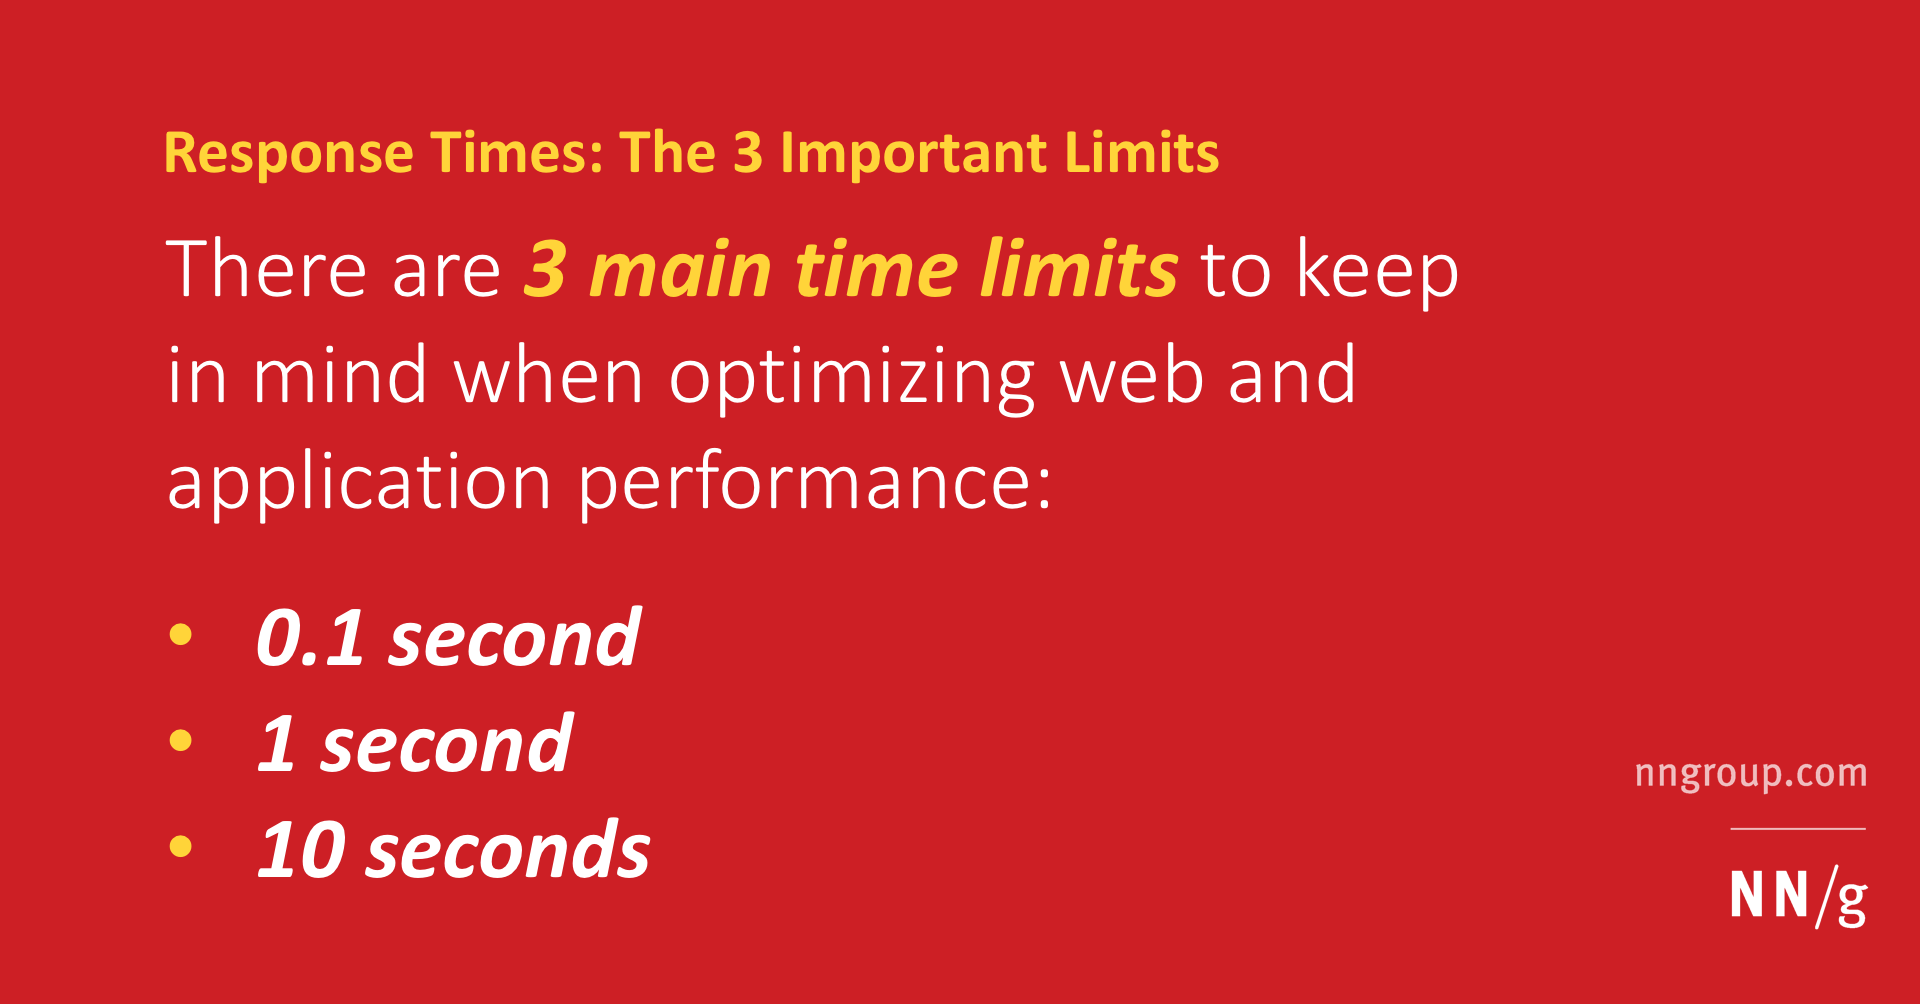 Response Time Limits: Article by Jakob Nielsen